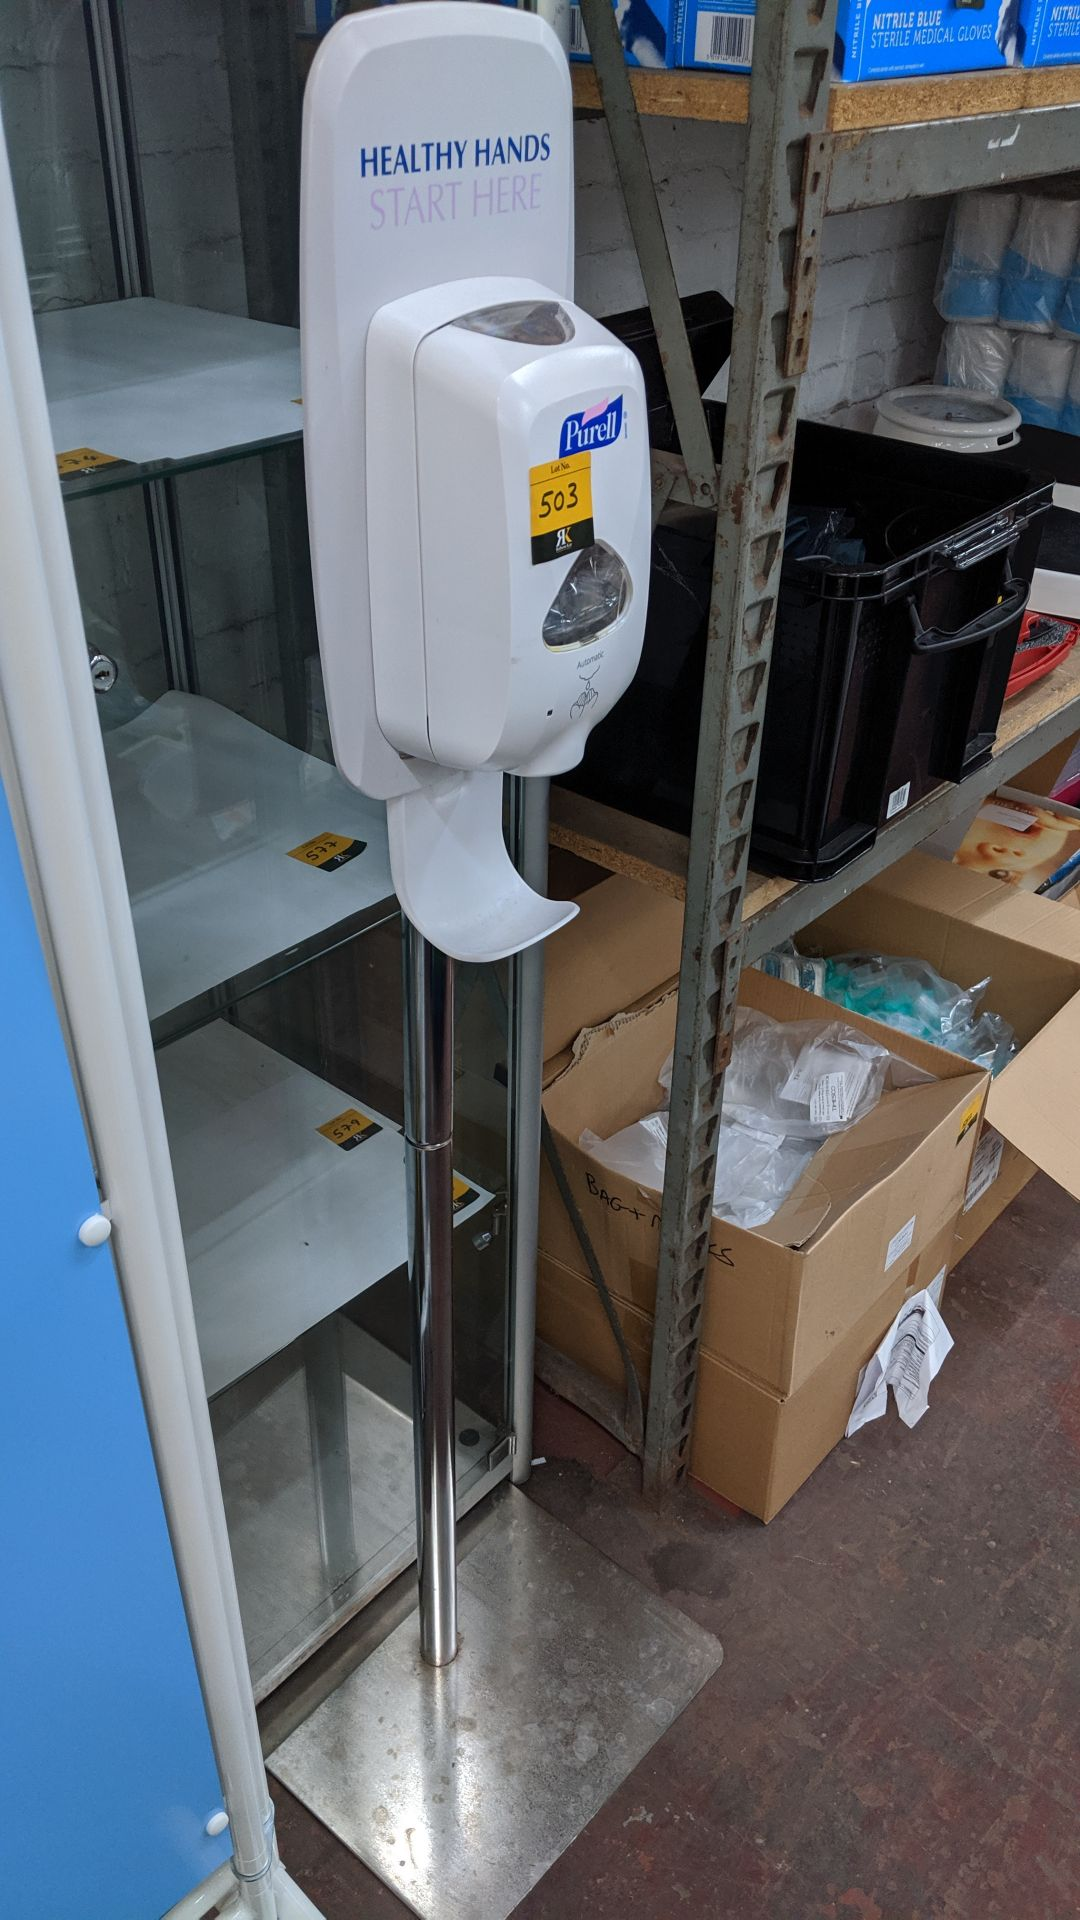 Lot 503 - Purell floor standing hand sanitizer dispensing device. This is one of a large number of lots used/